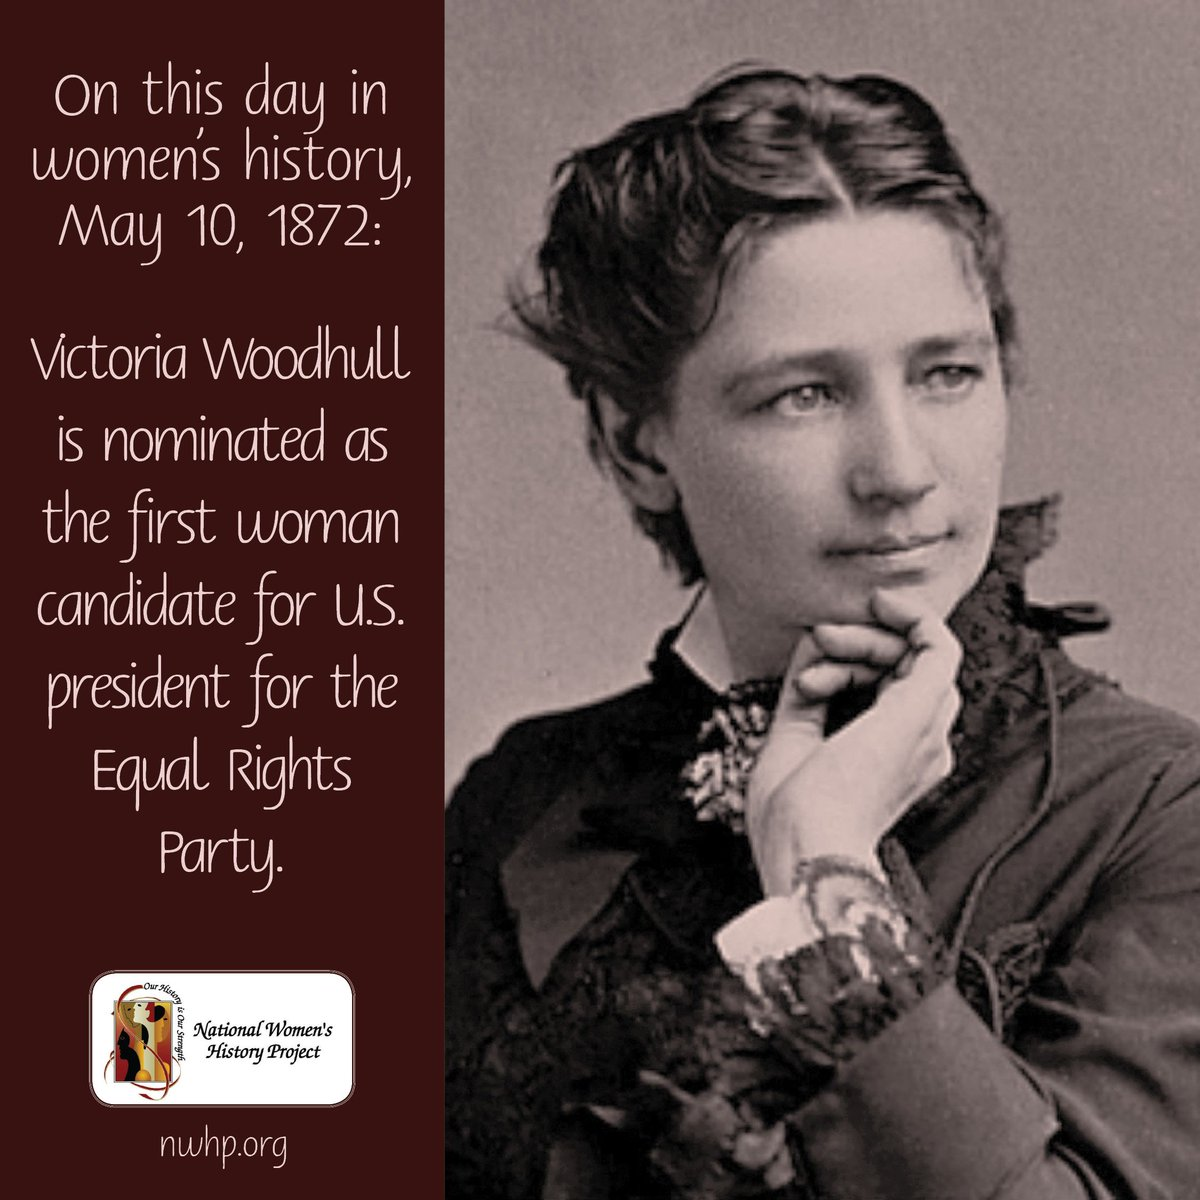 picture This Day in Womens History